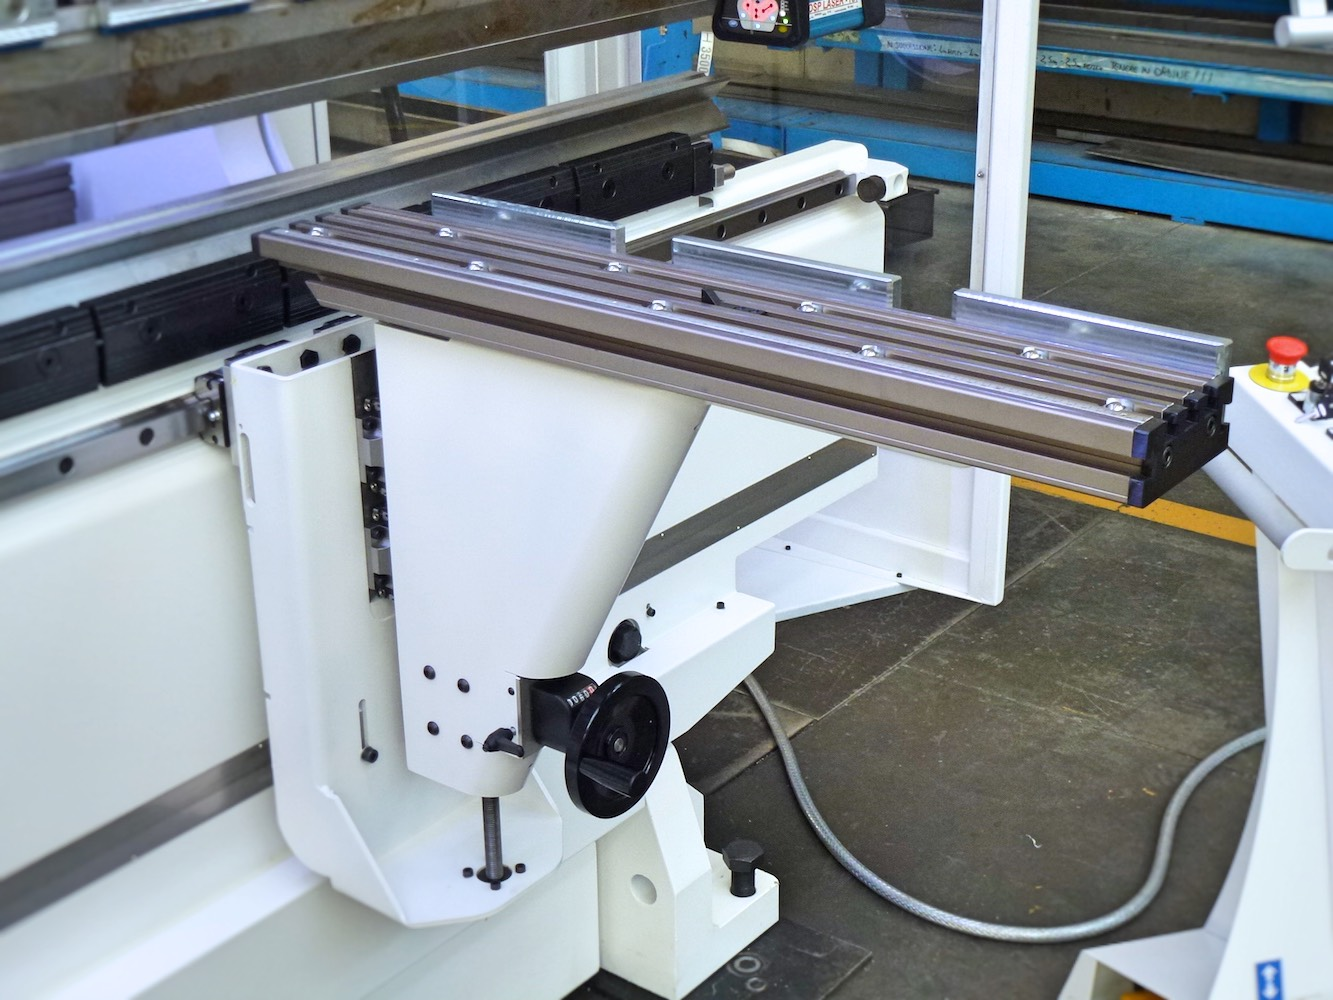 height-adjustable sheet metal support arm - type b